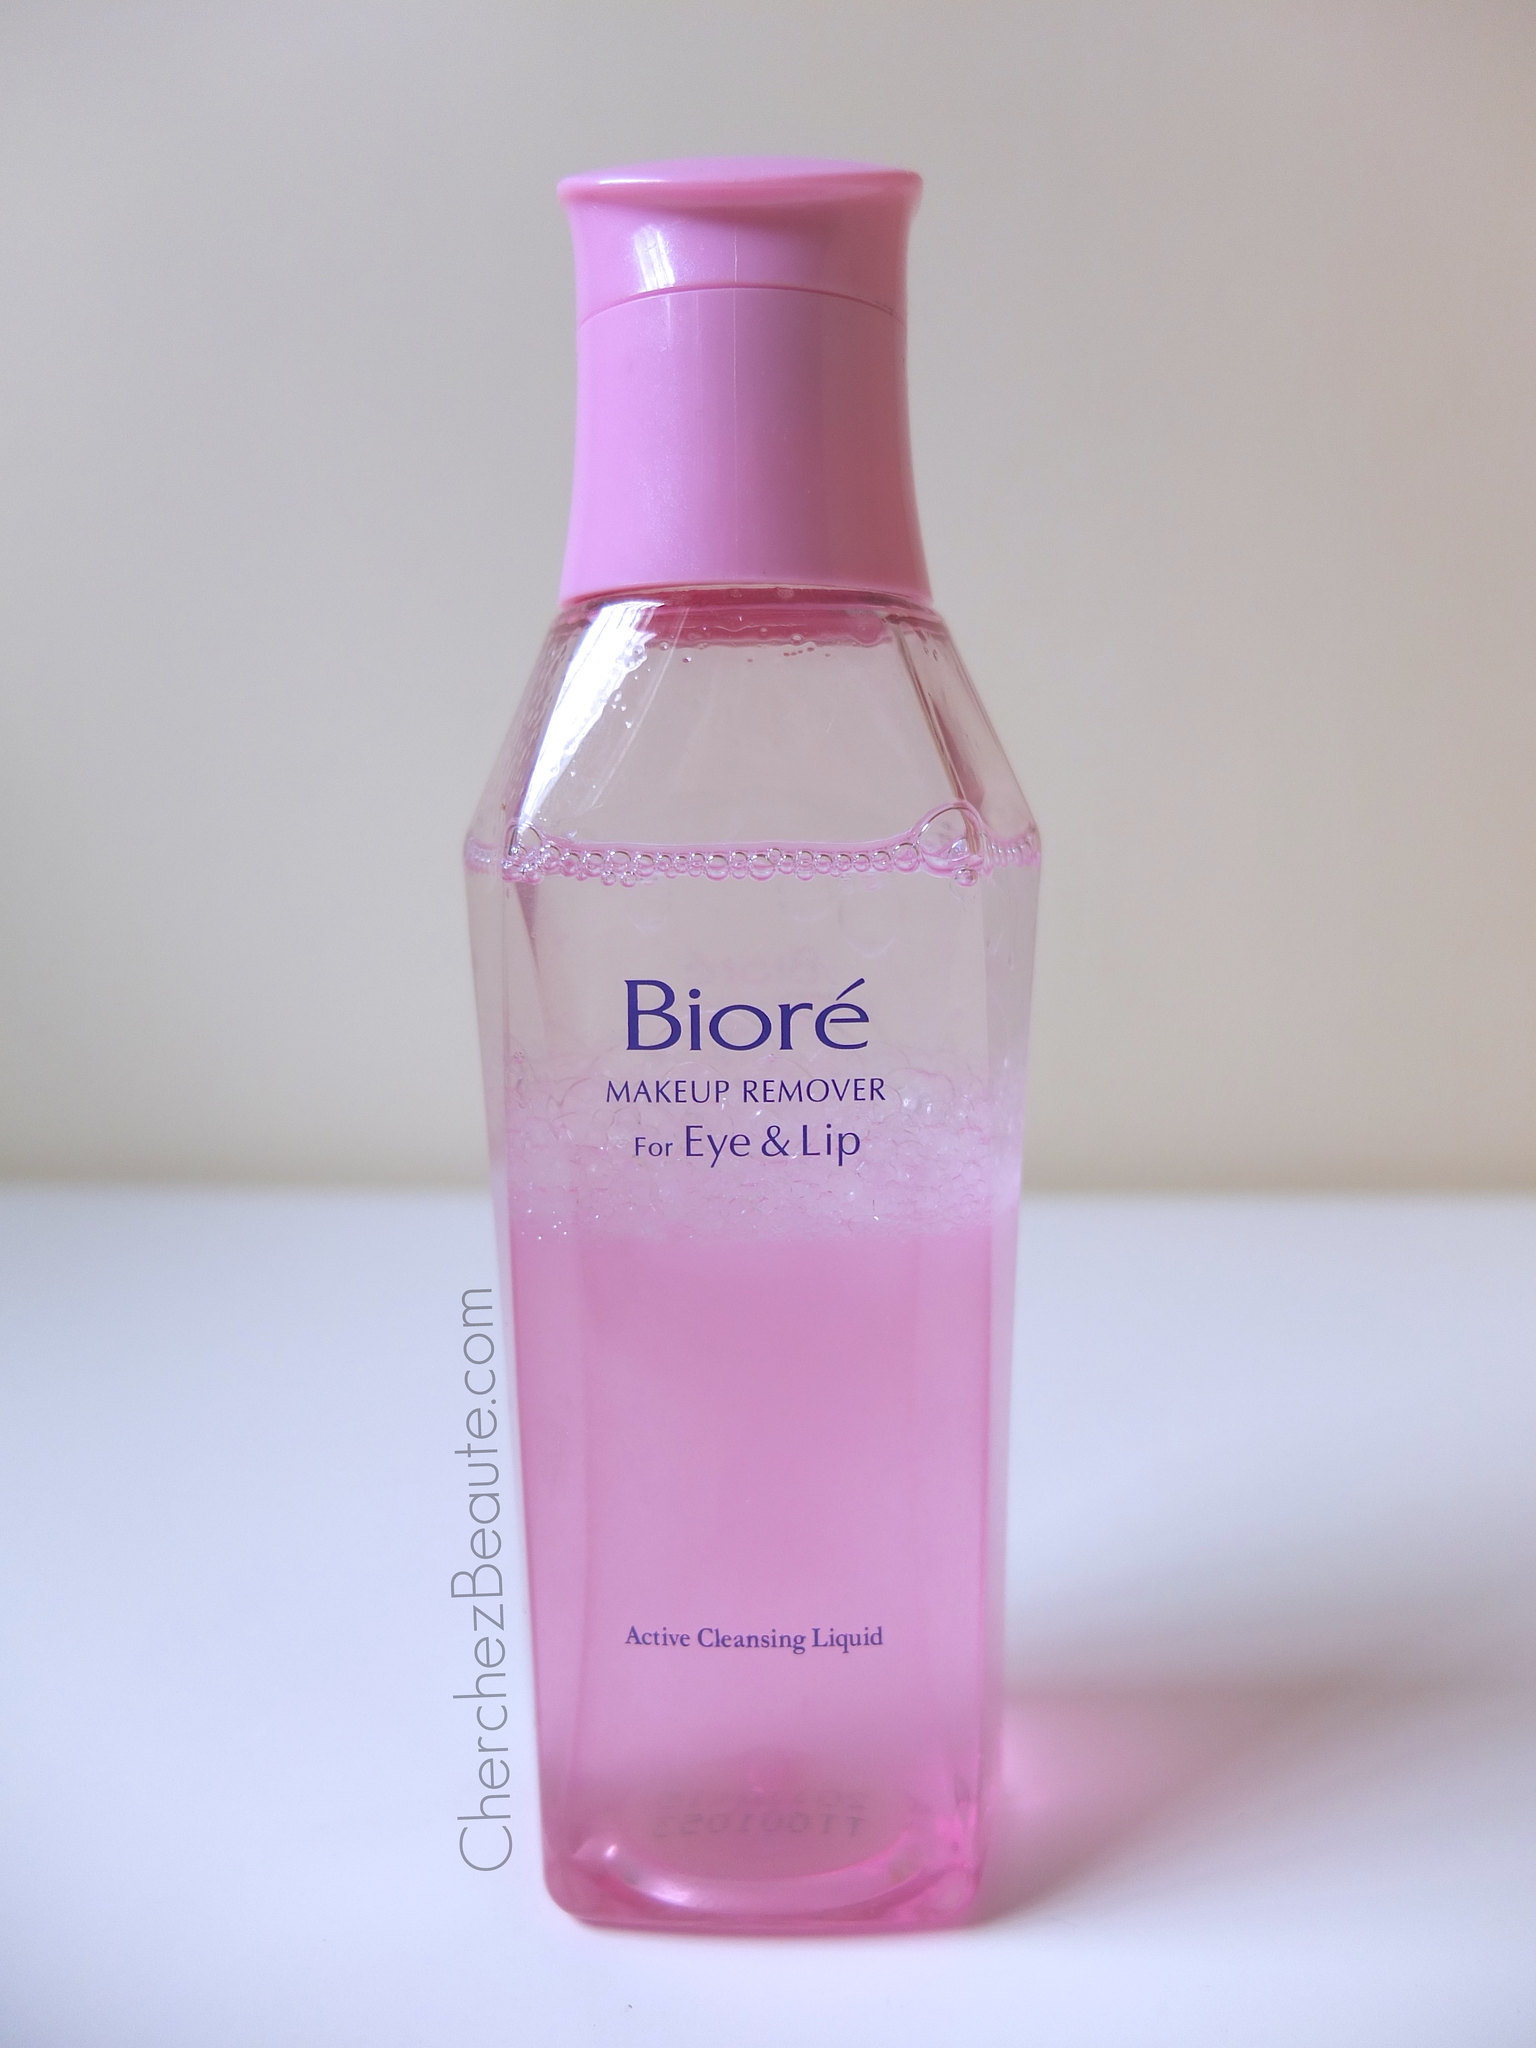 Bioré Makeup Remover for Eye and Lip